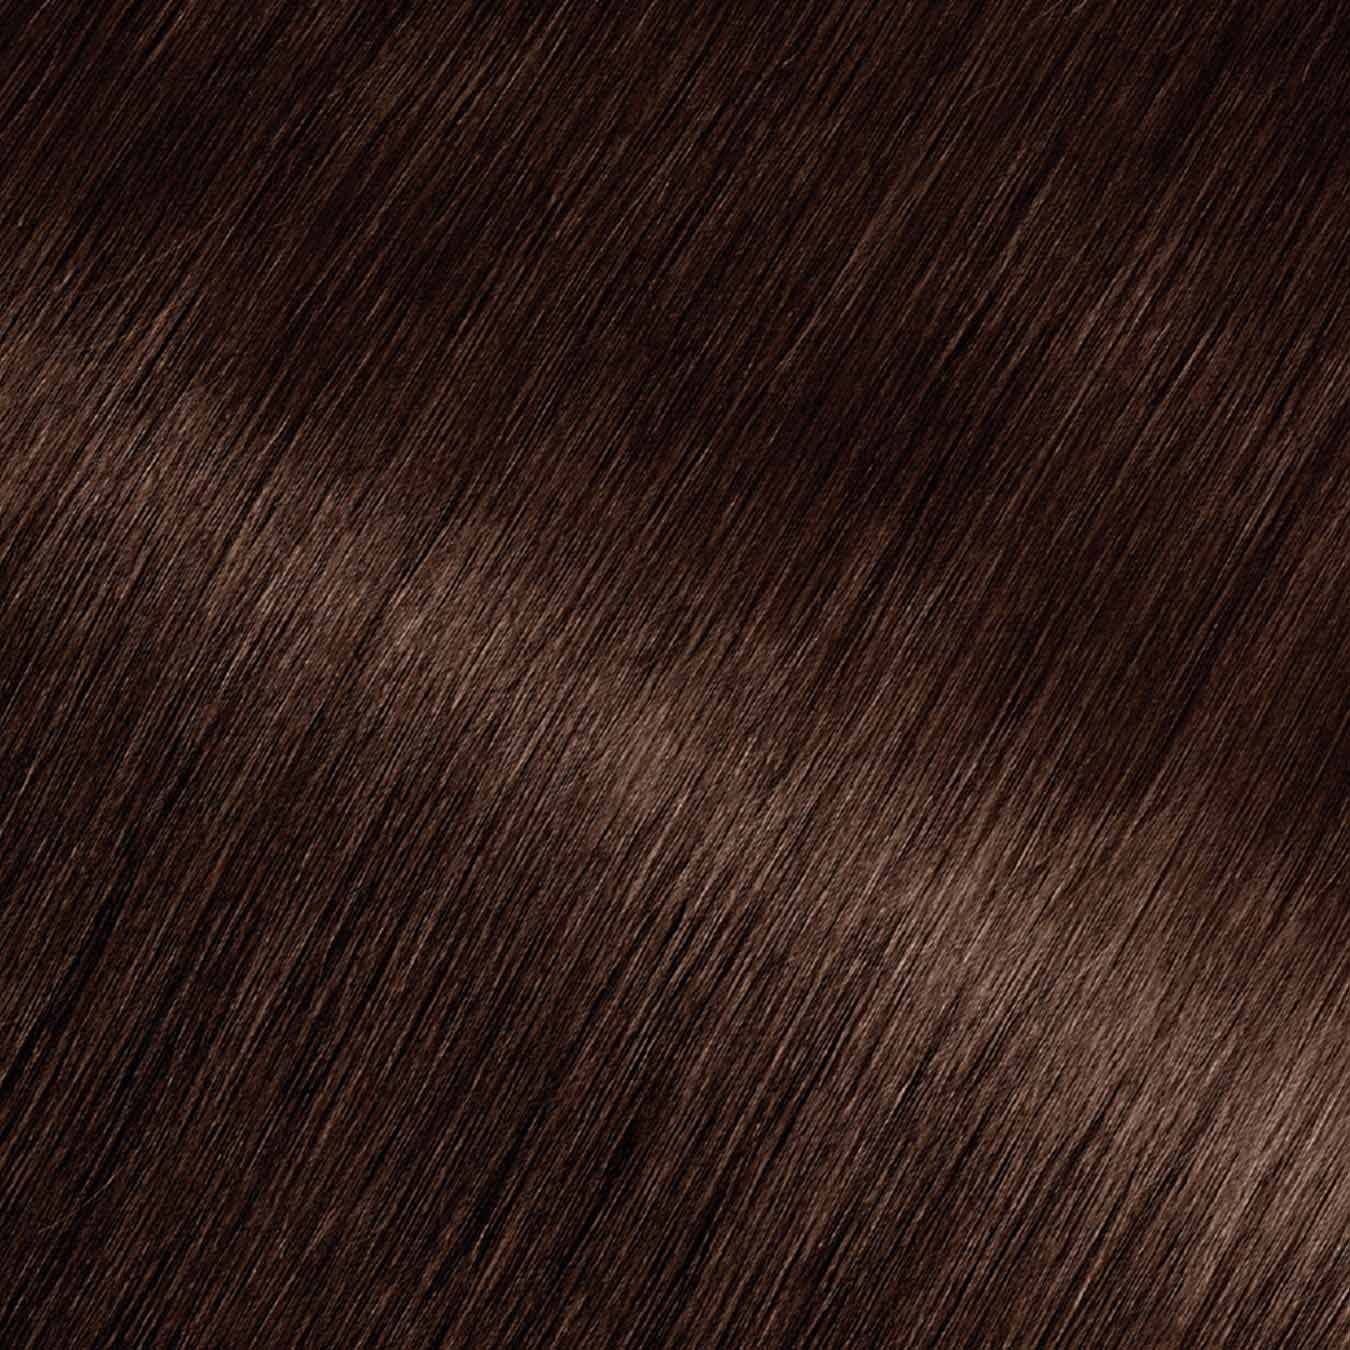 Garnier Olia 4.35 - Dark Golden Mahogany - Powered Permanent Hair Color